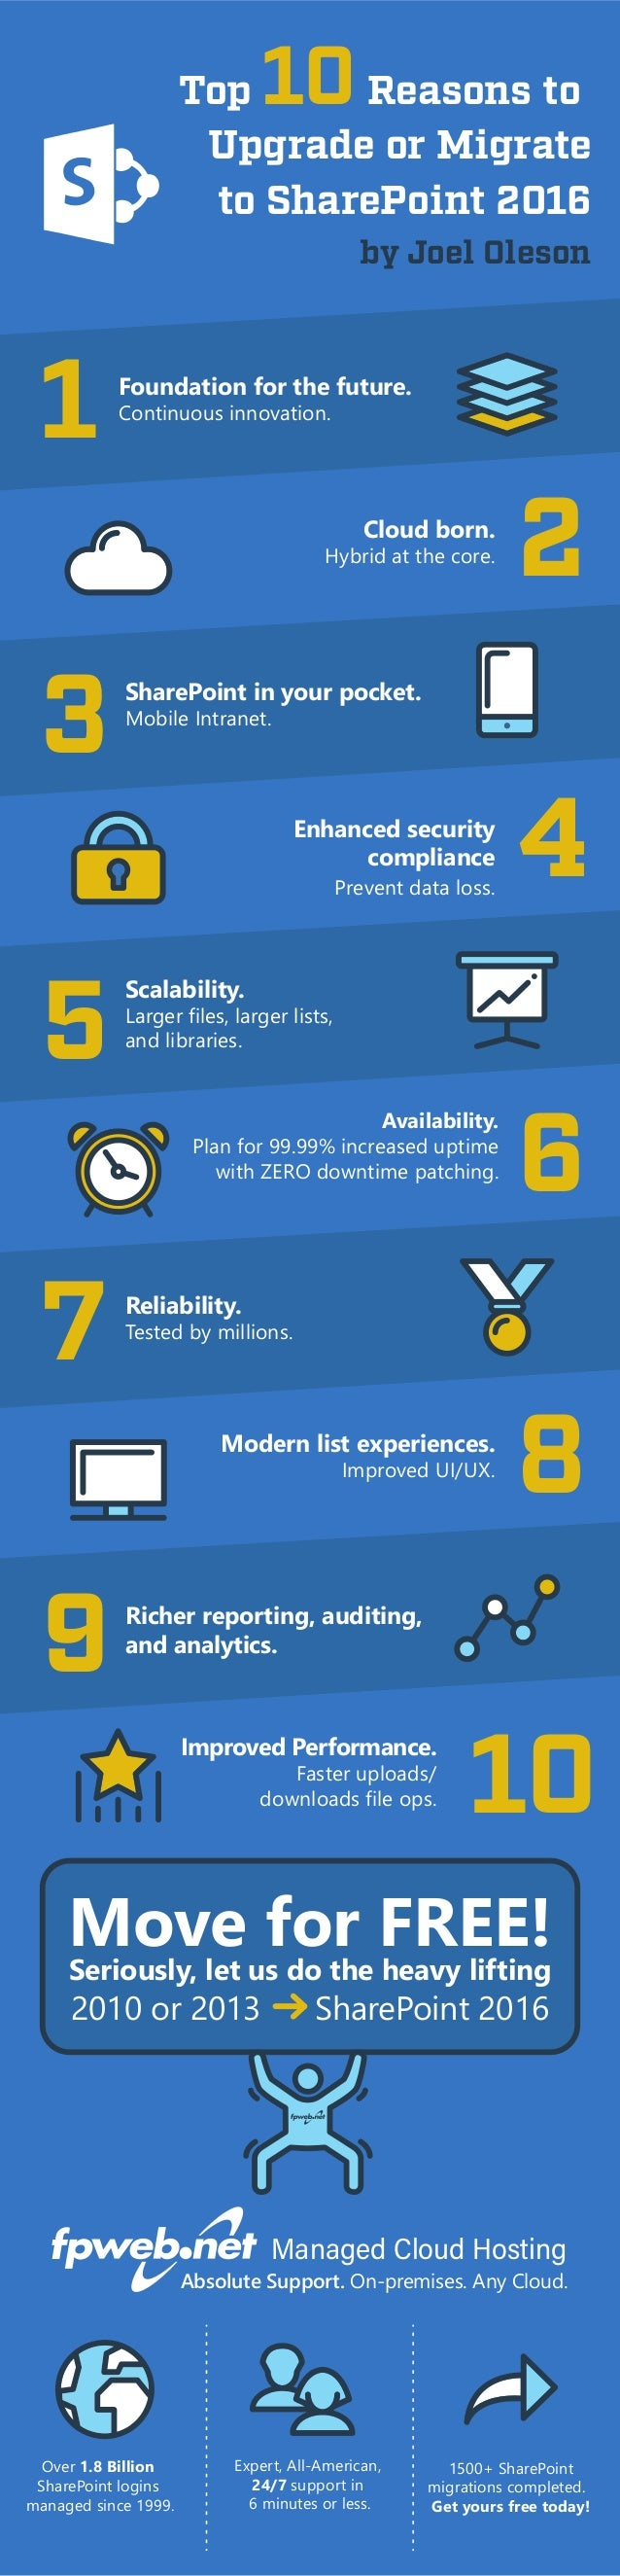 Top 10Reasons to Upgrade or Migrate to SharePoint 2016 by Joel Oleson 1 3 5 7 9 2 4 6 8 10 Foundation for the future. Cont...